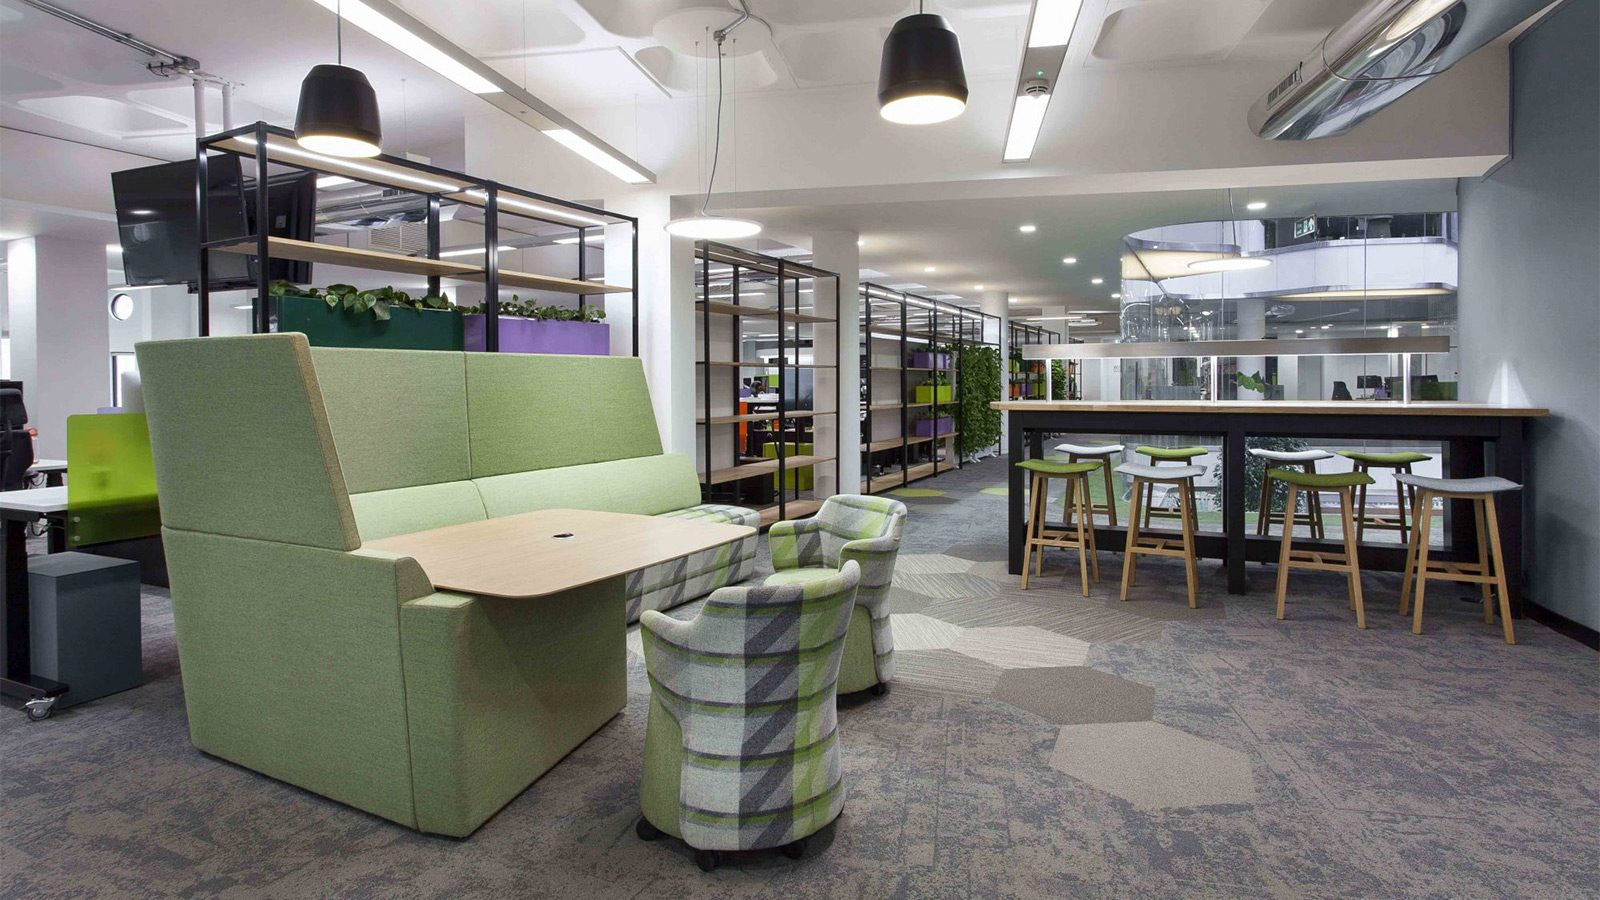 Collaboration inspiration for a post Covid-19 workplace – Our Top 7